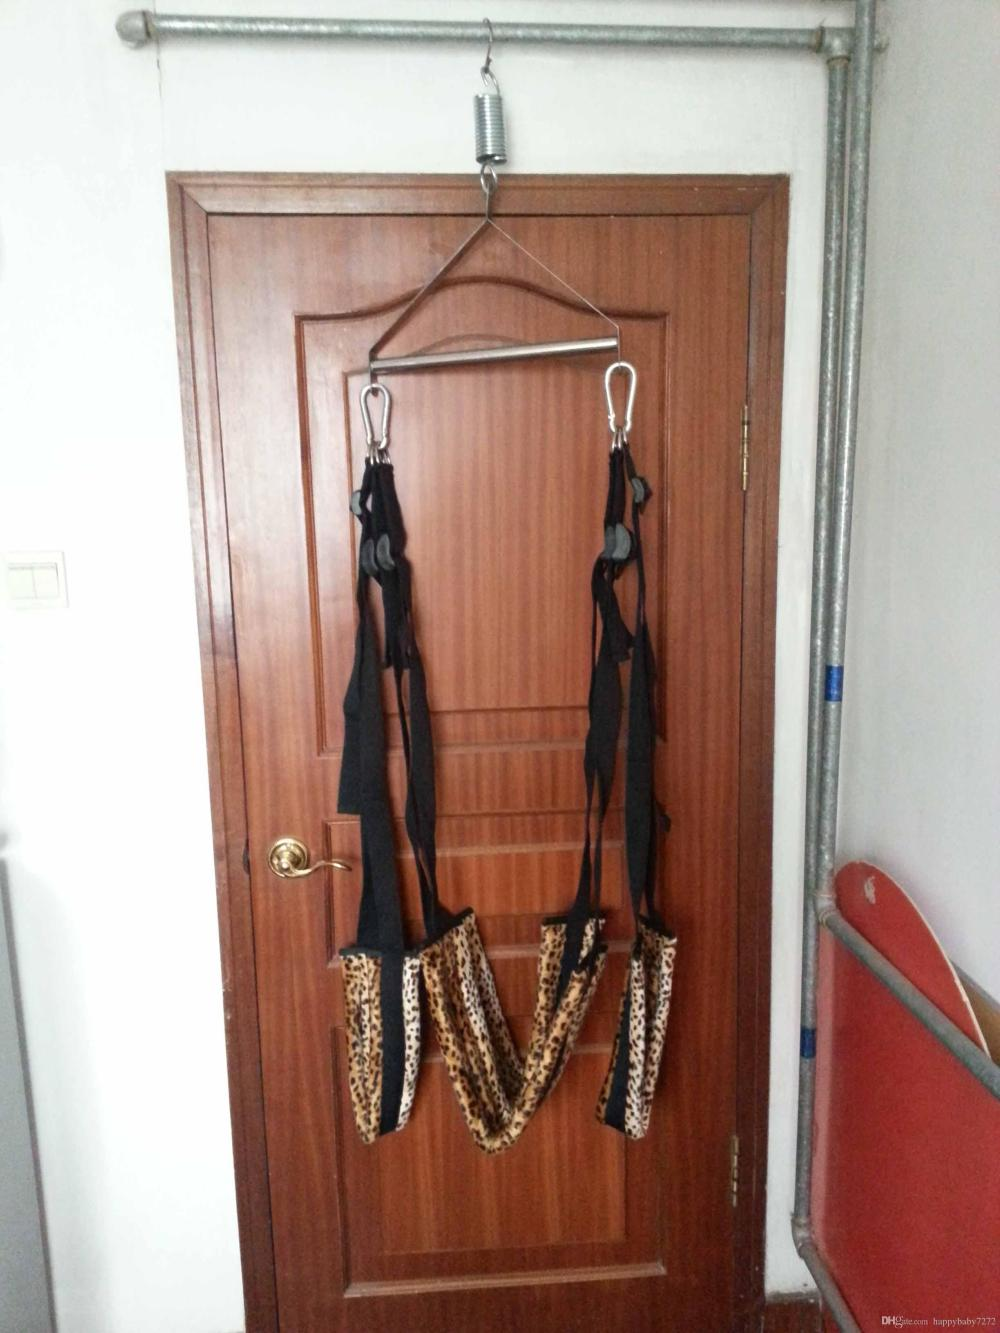 medium resolution of  leopard swing chairs with tripod lover s aid toy fetish bondage body sex swing harness tool new